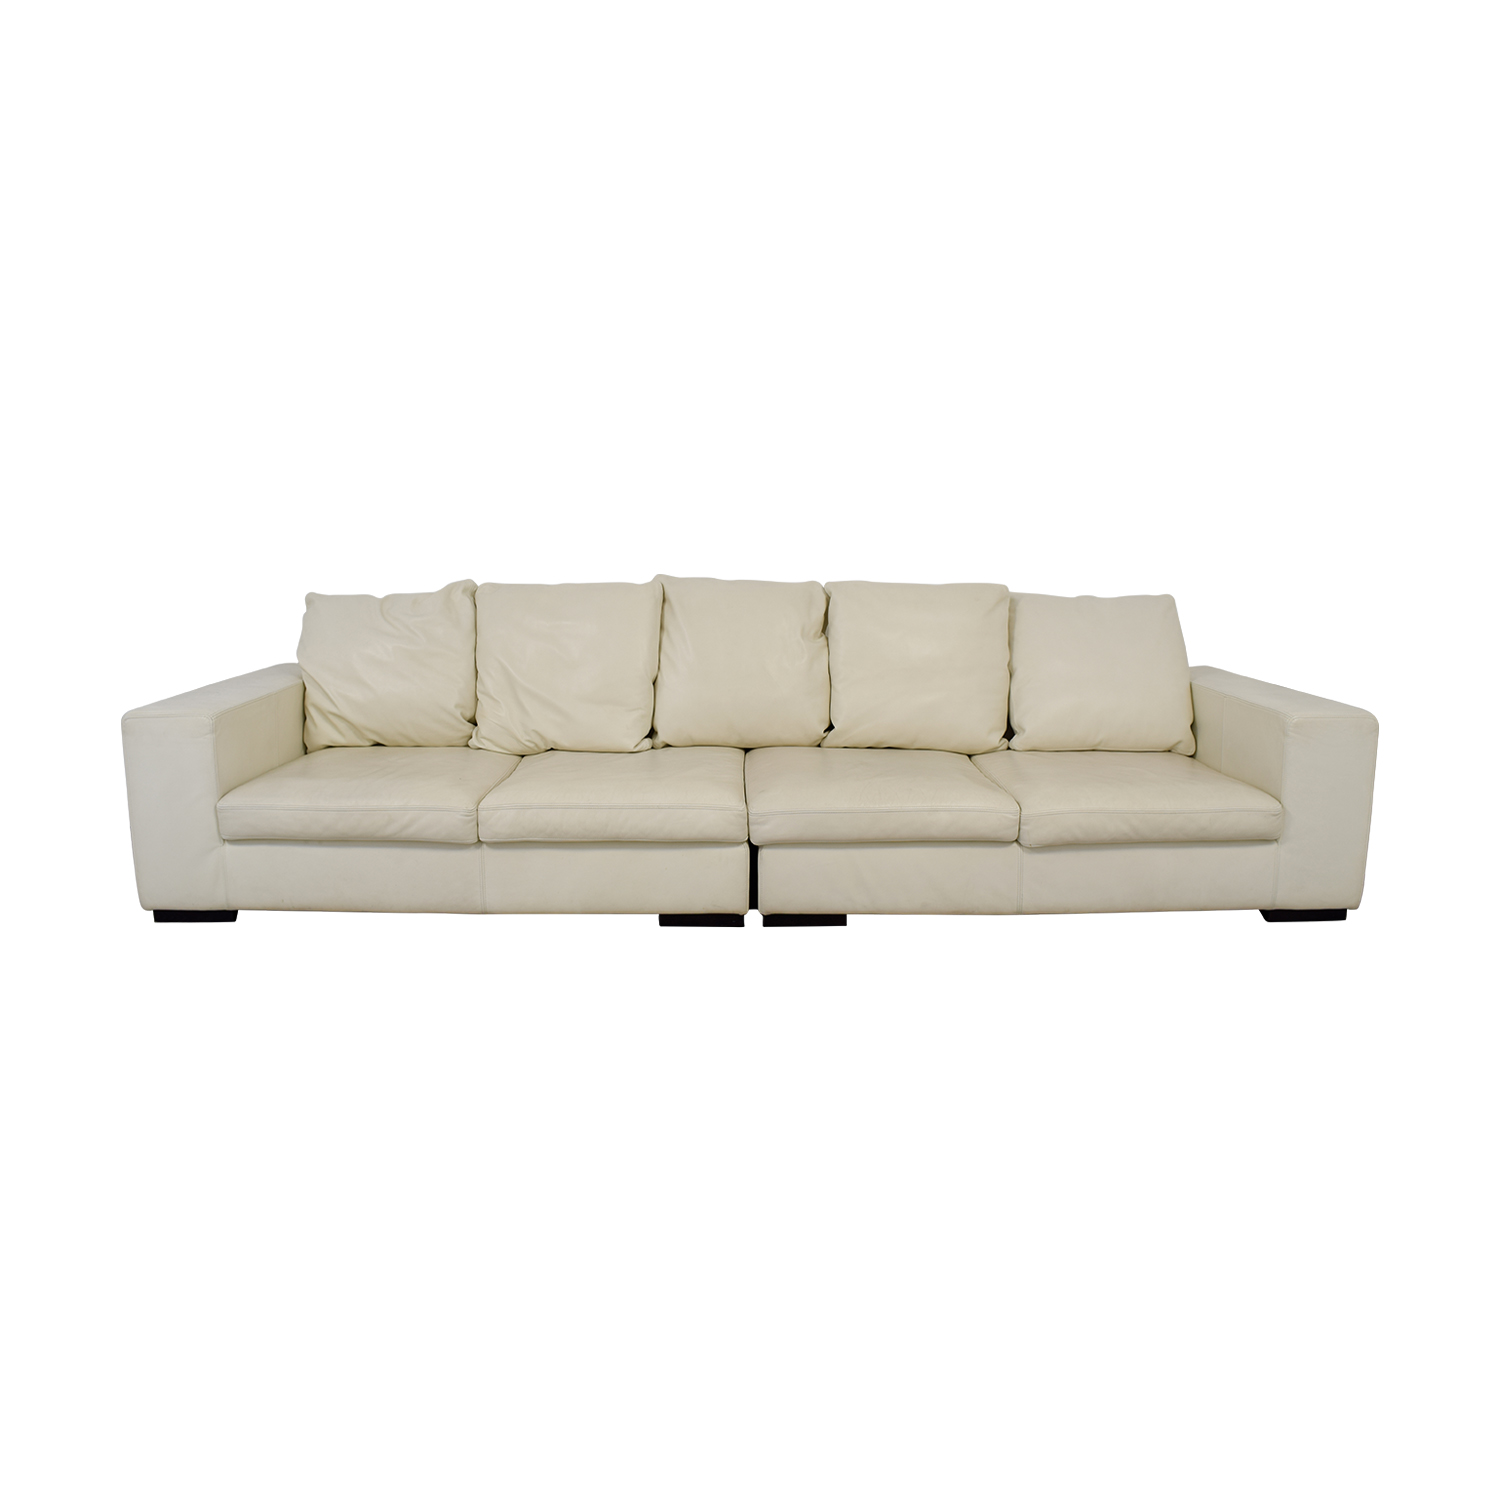 shop Giovanni Erba Giovanni Erba White Leather Modular Sofa online